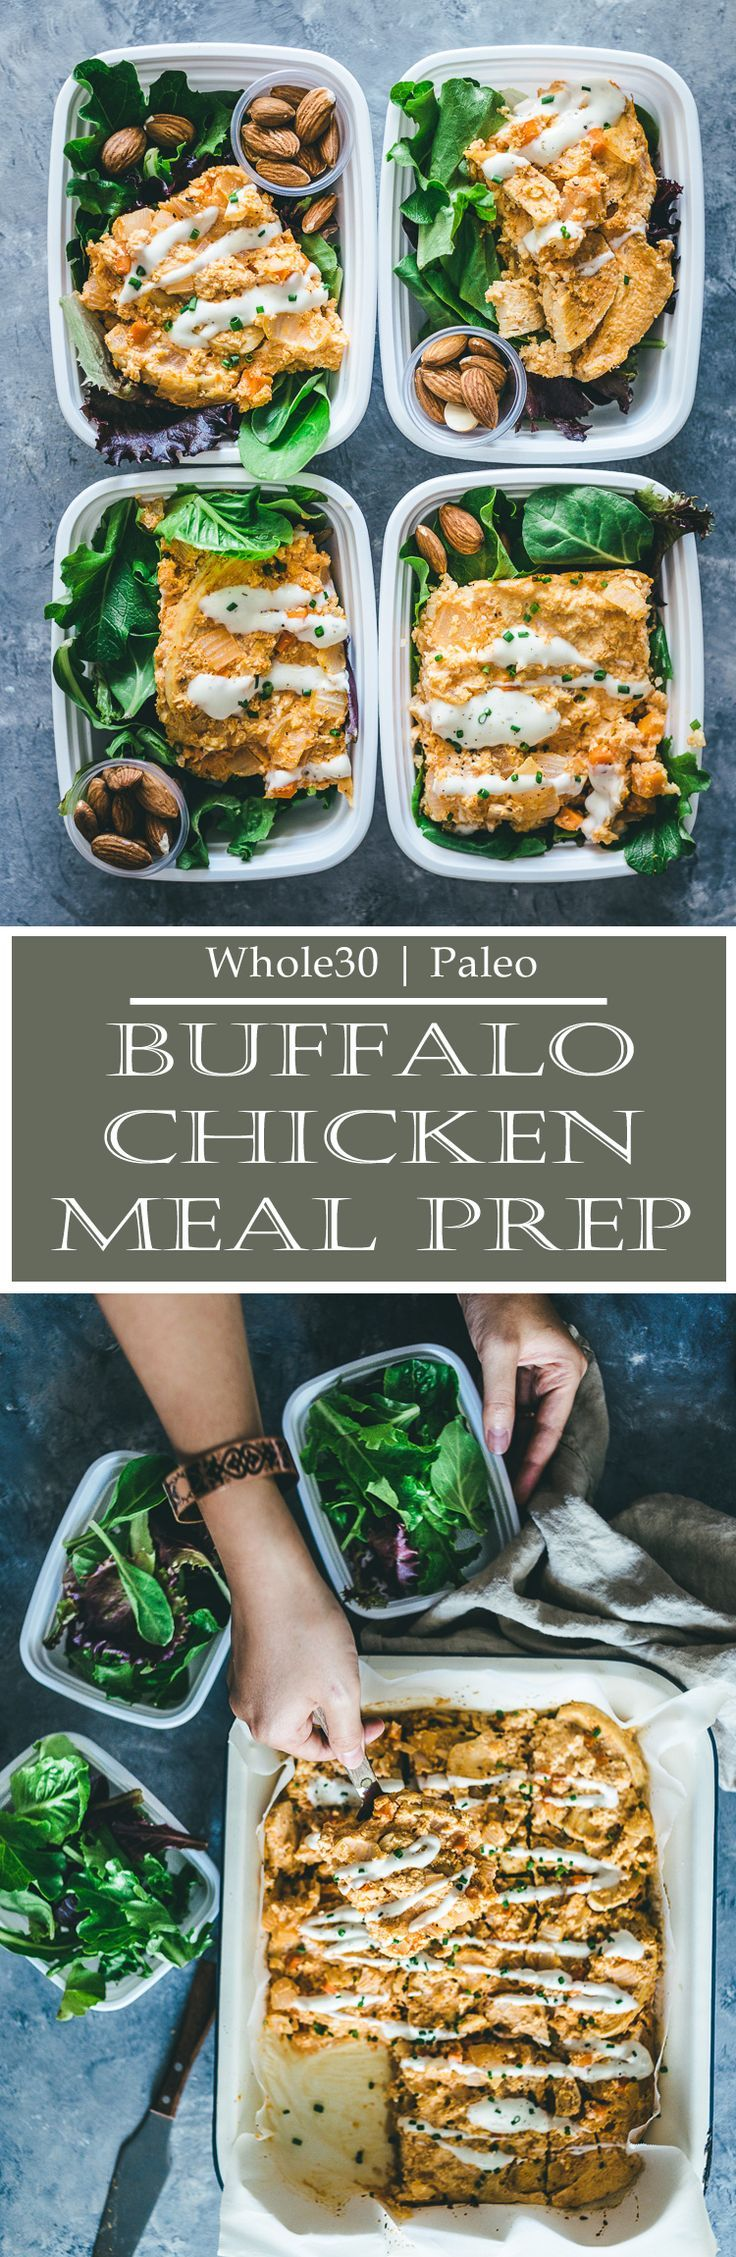 This Whole30 Baked Buffalo Chicken Casserole has all of the traditional buffalo chicken flavors that you love baked into one healthy dish! Gluten free, low carb and exceptionally easy. A meal prep recipe doesn't get any better than that!